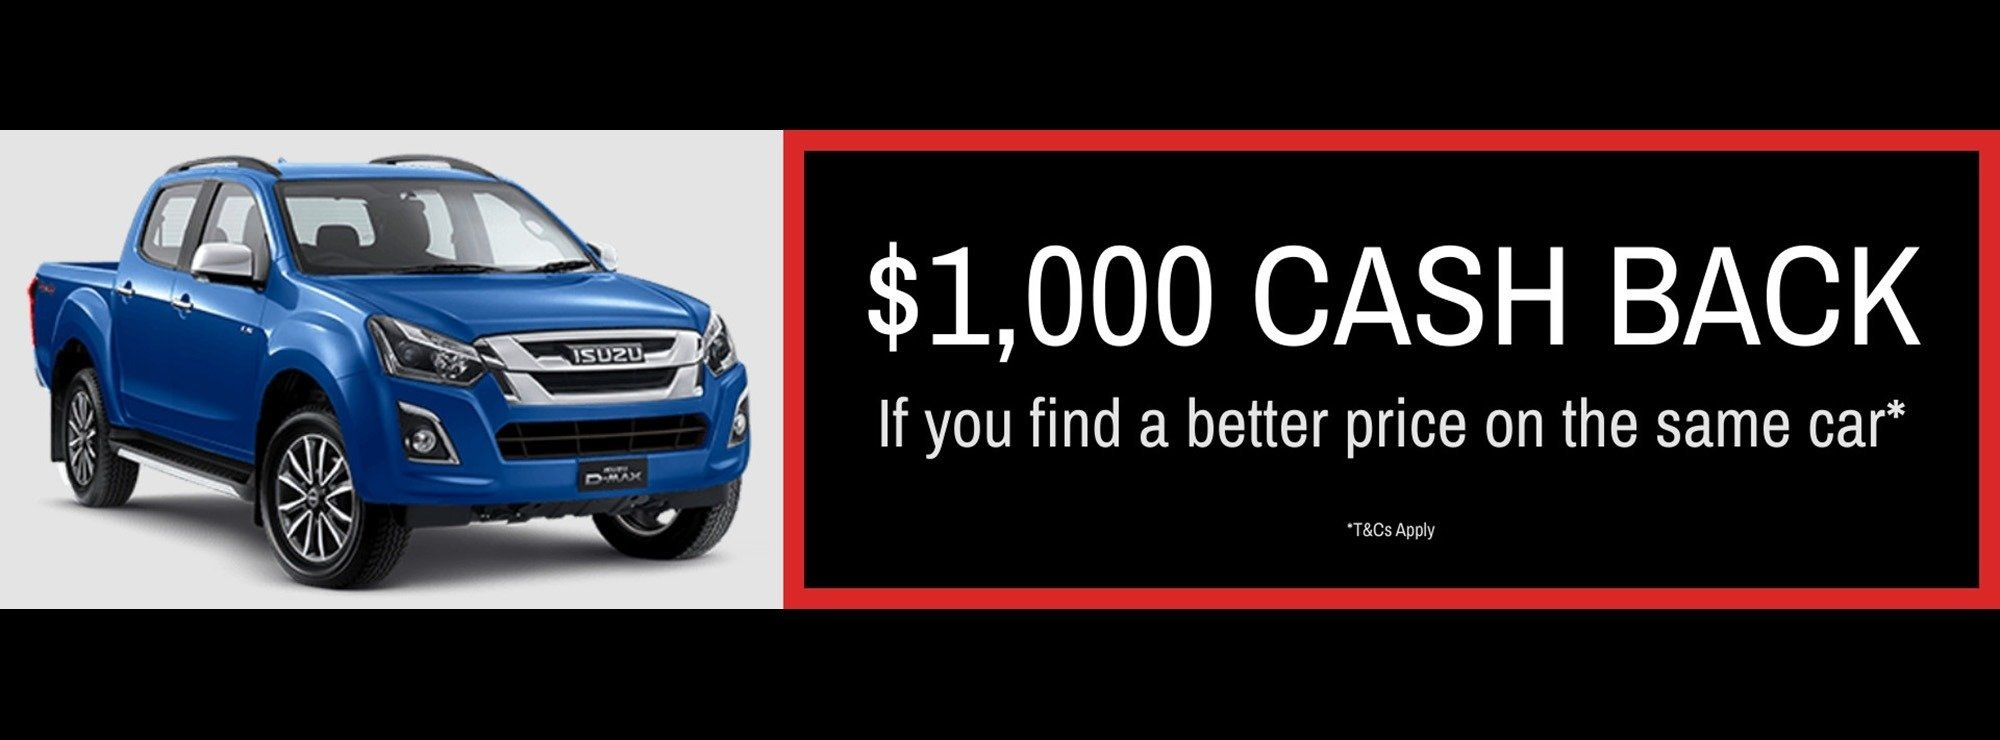 Wayne Philis Isuzu Ute Price Guarantee